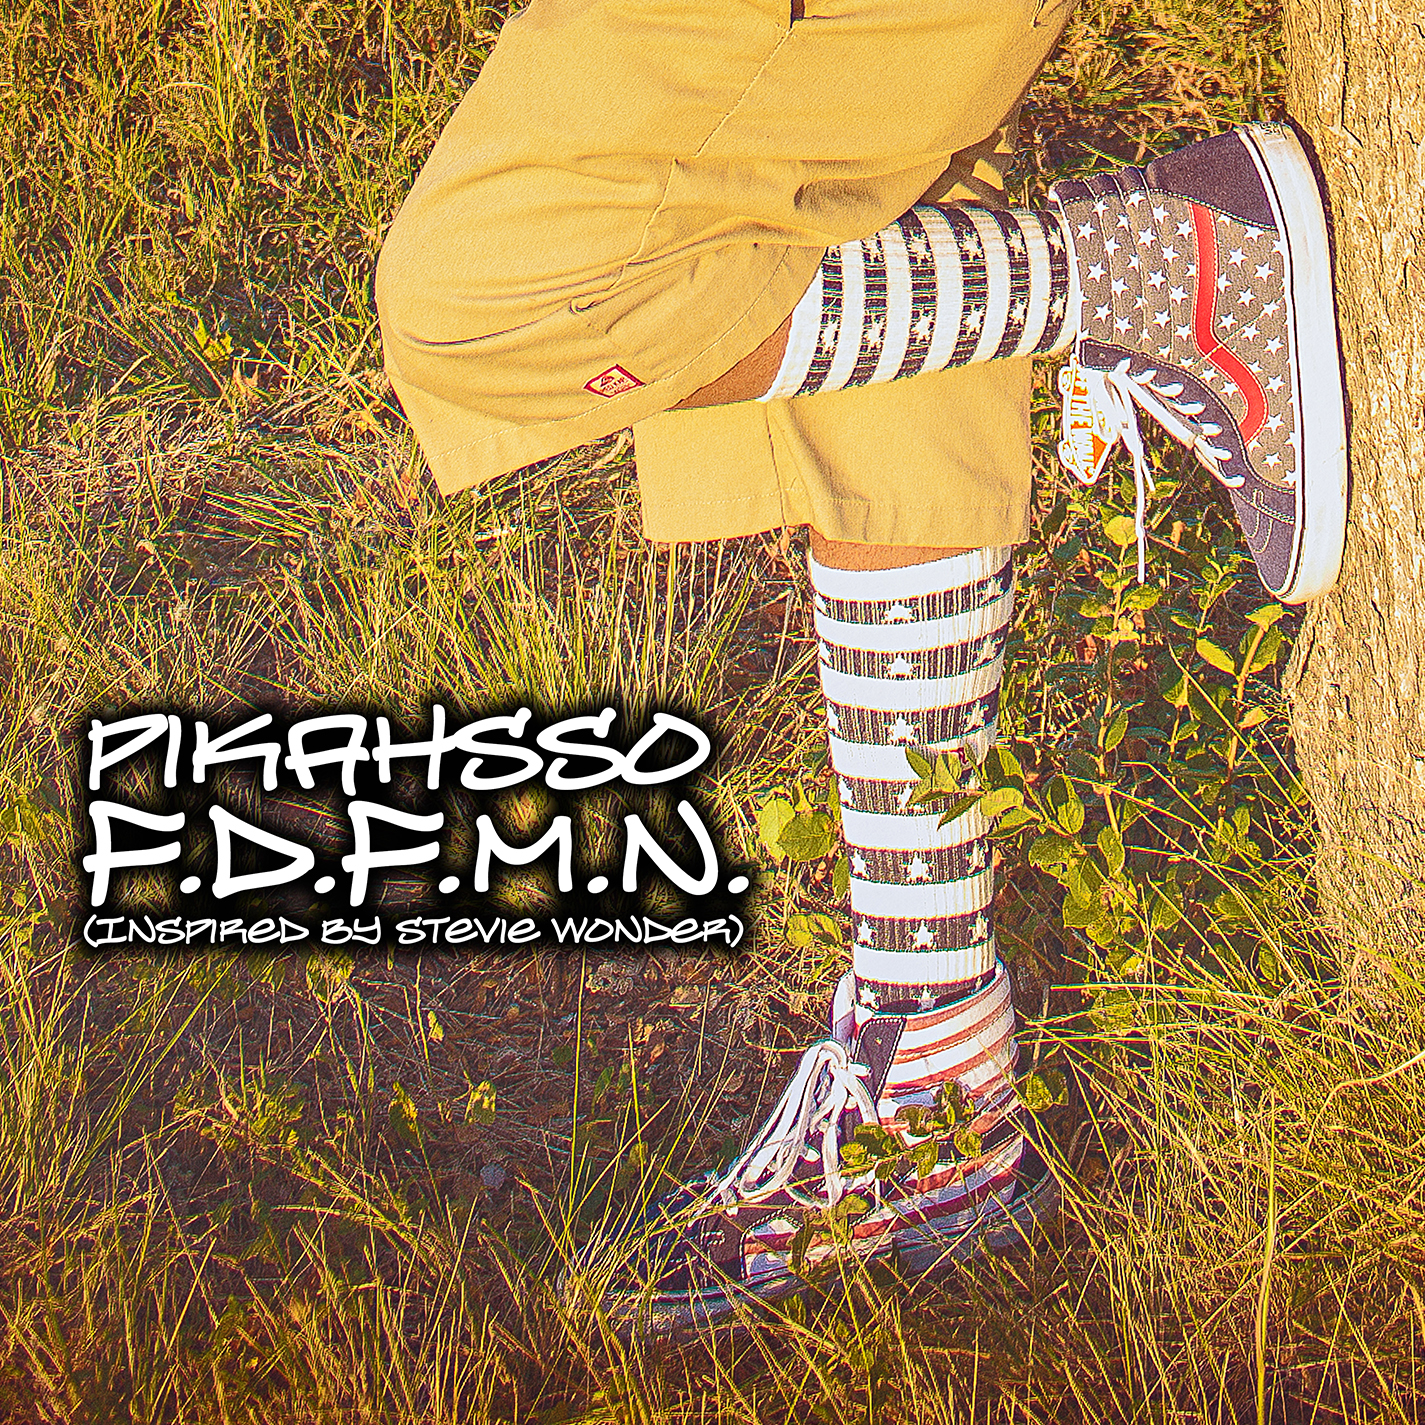 PiKaHsSo #FDFMN Feet Don't Fail Me Now / PiKaHsSo's Discography